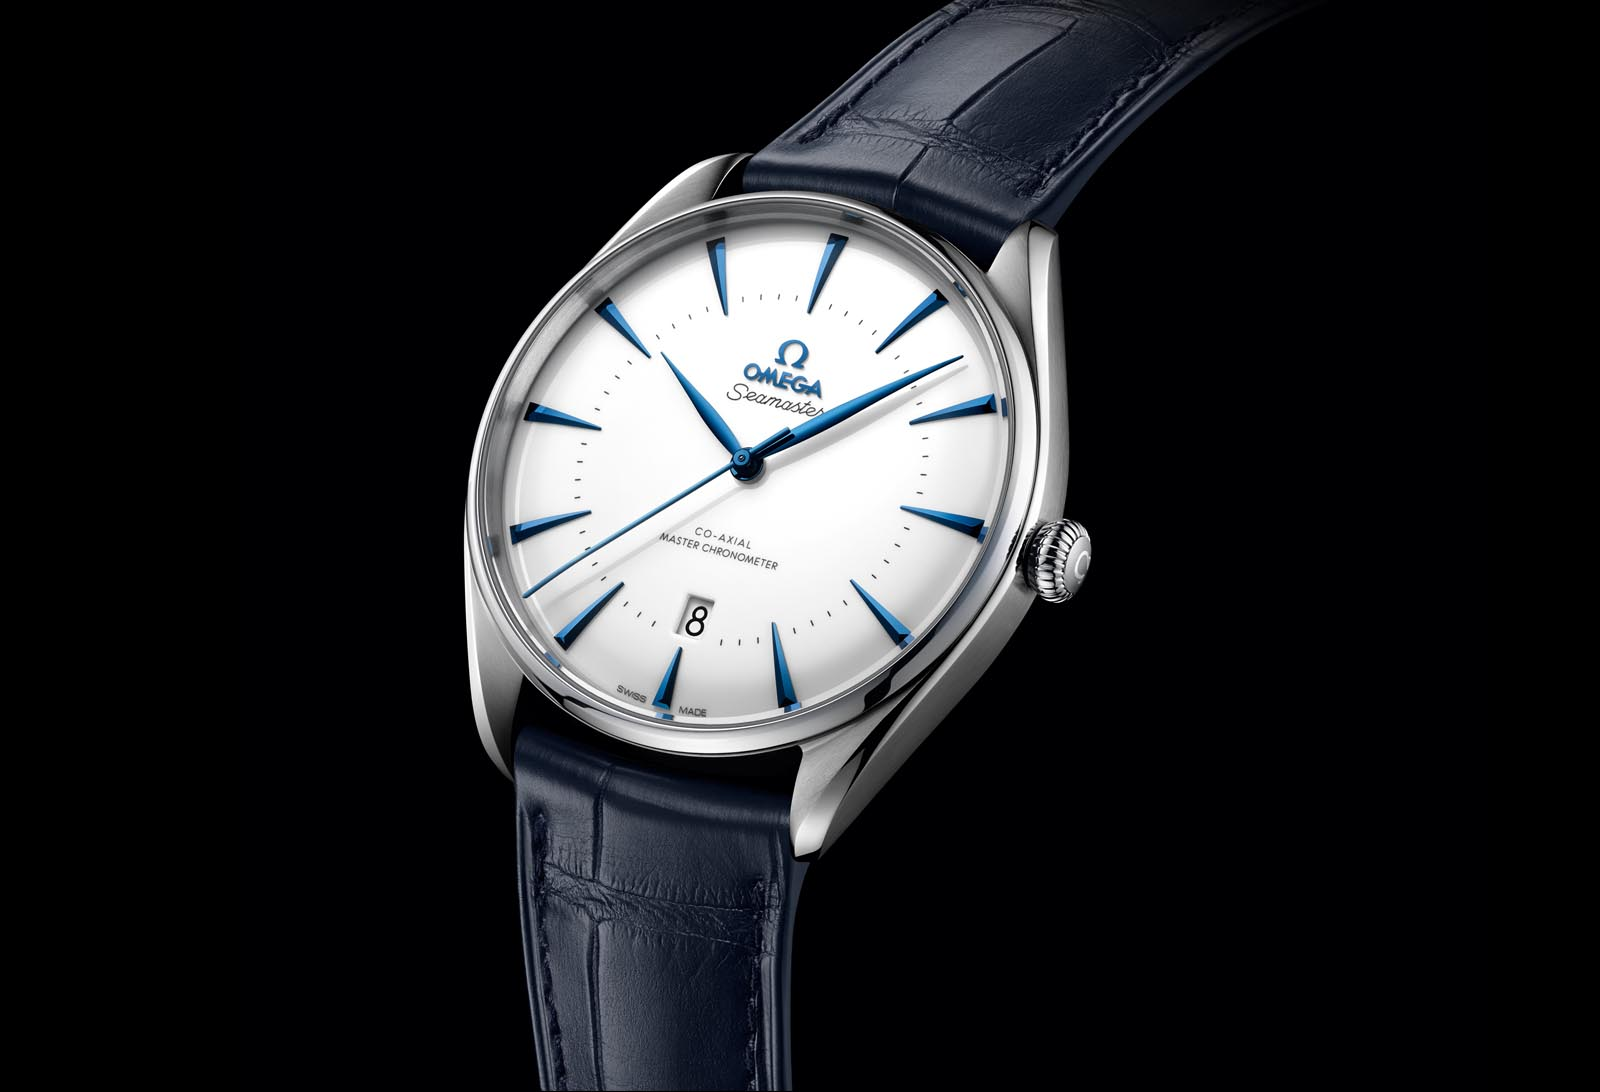 Omega Seamaster Boutique Exclusive Singapore Limited Edition